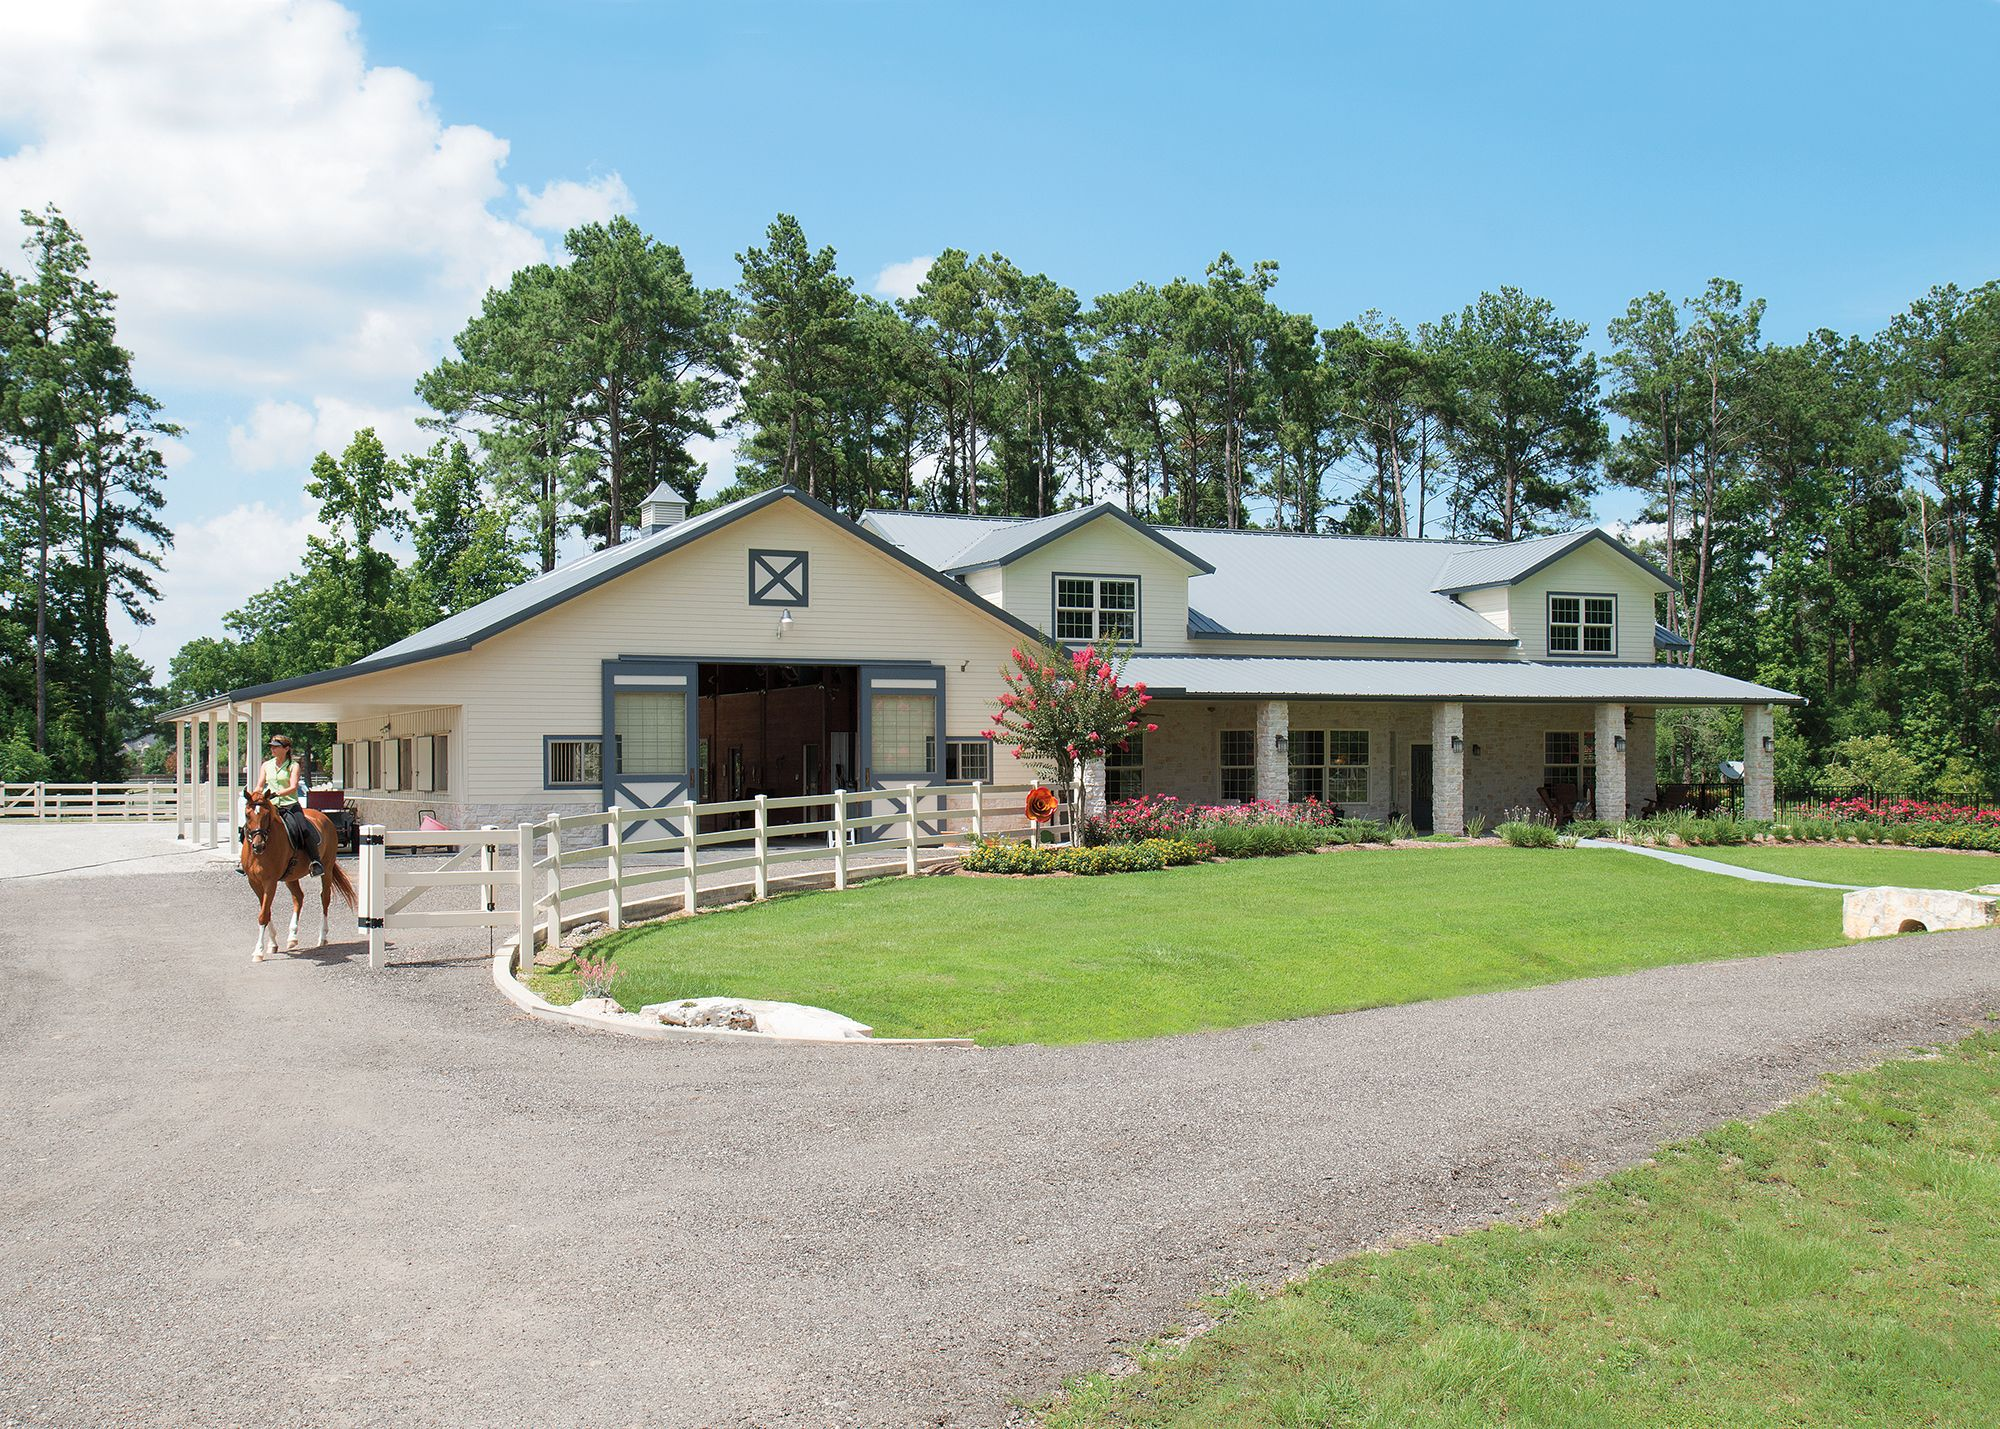 Morton buildings horse barn with attached residence in for Houses with barns